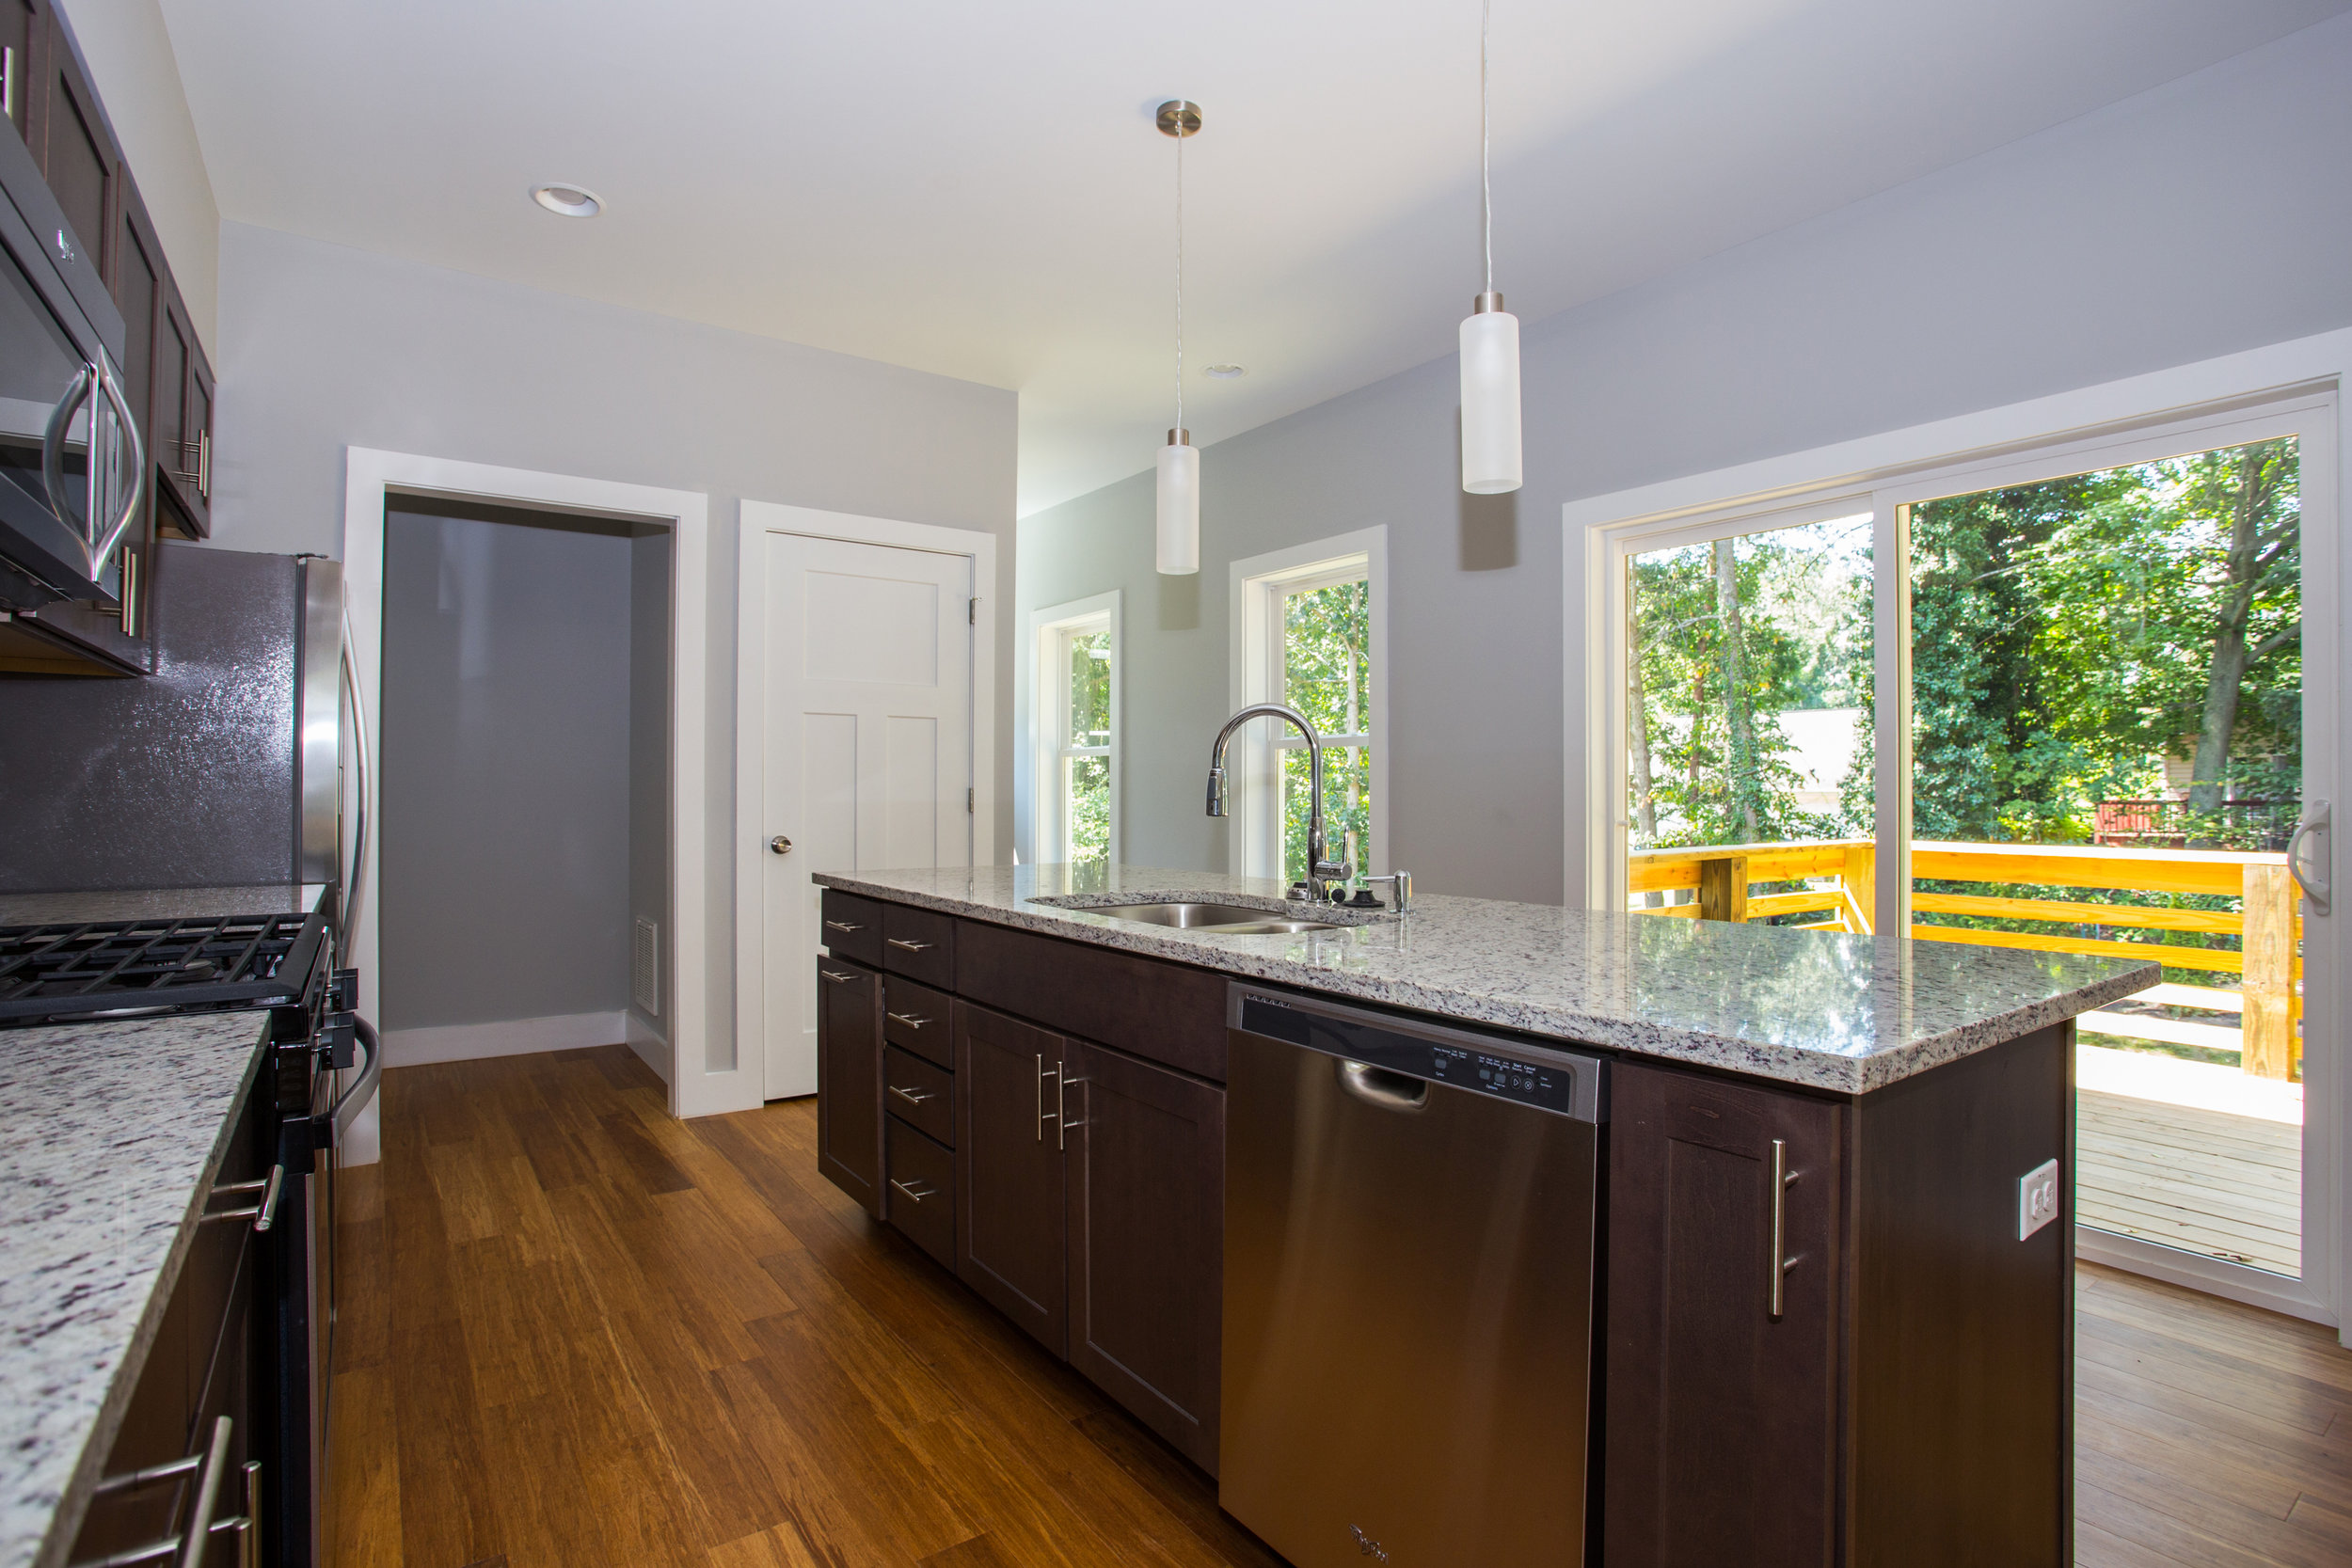 Kitchen/dining room opens to back spacious patio and private enclosure